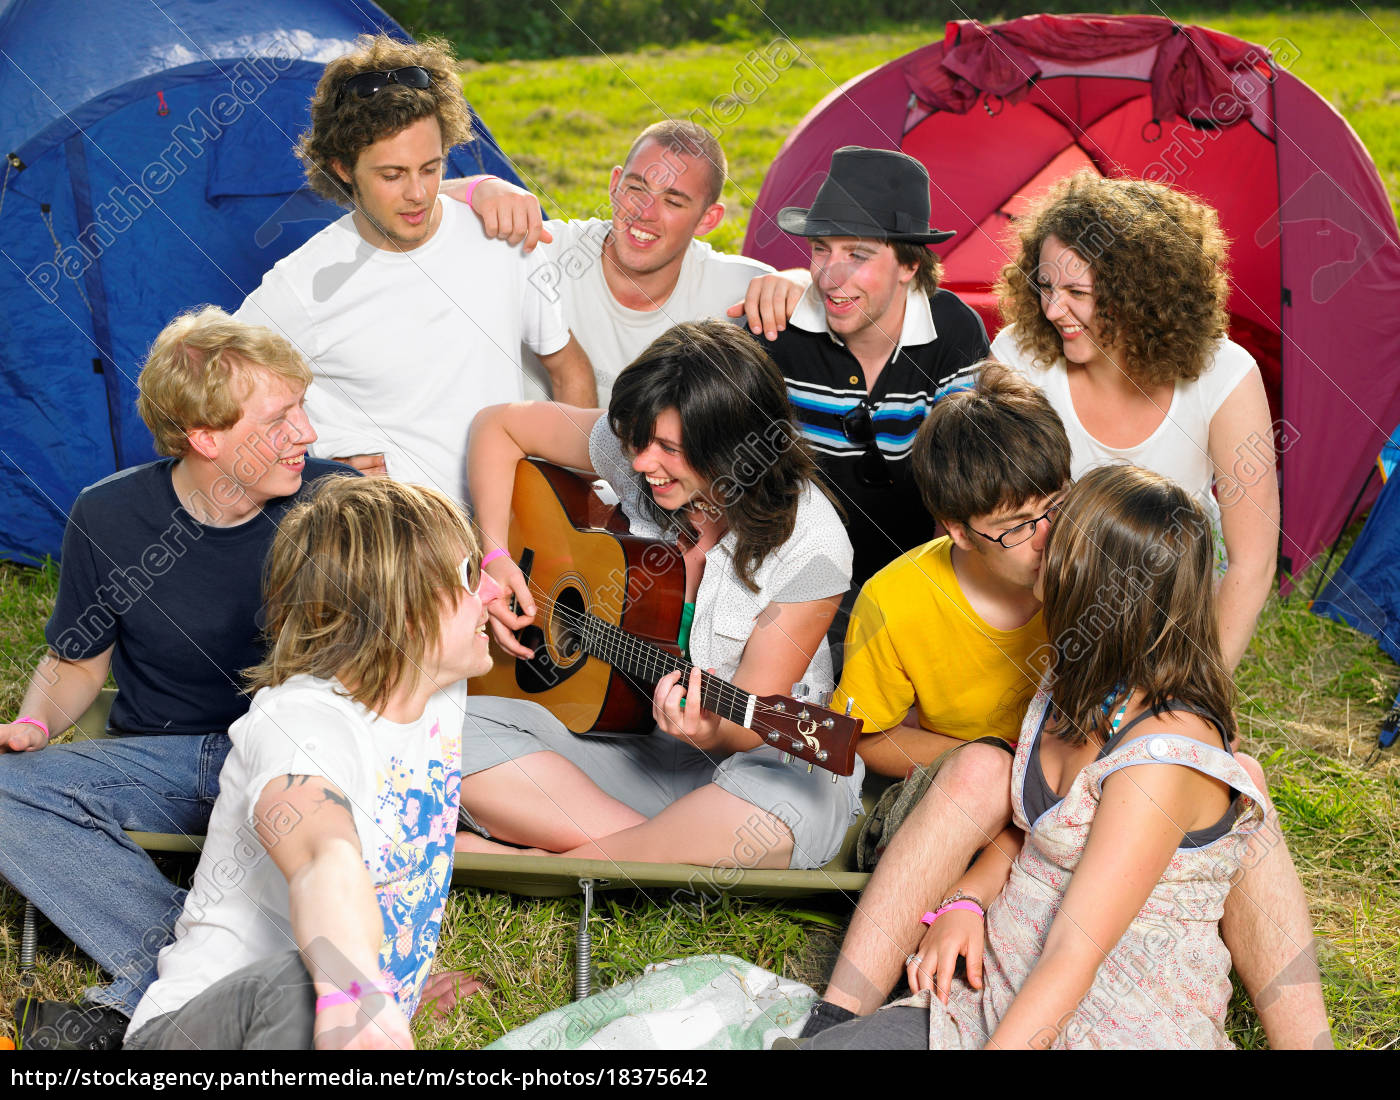 group, outside, tent - 18375642